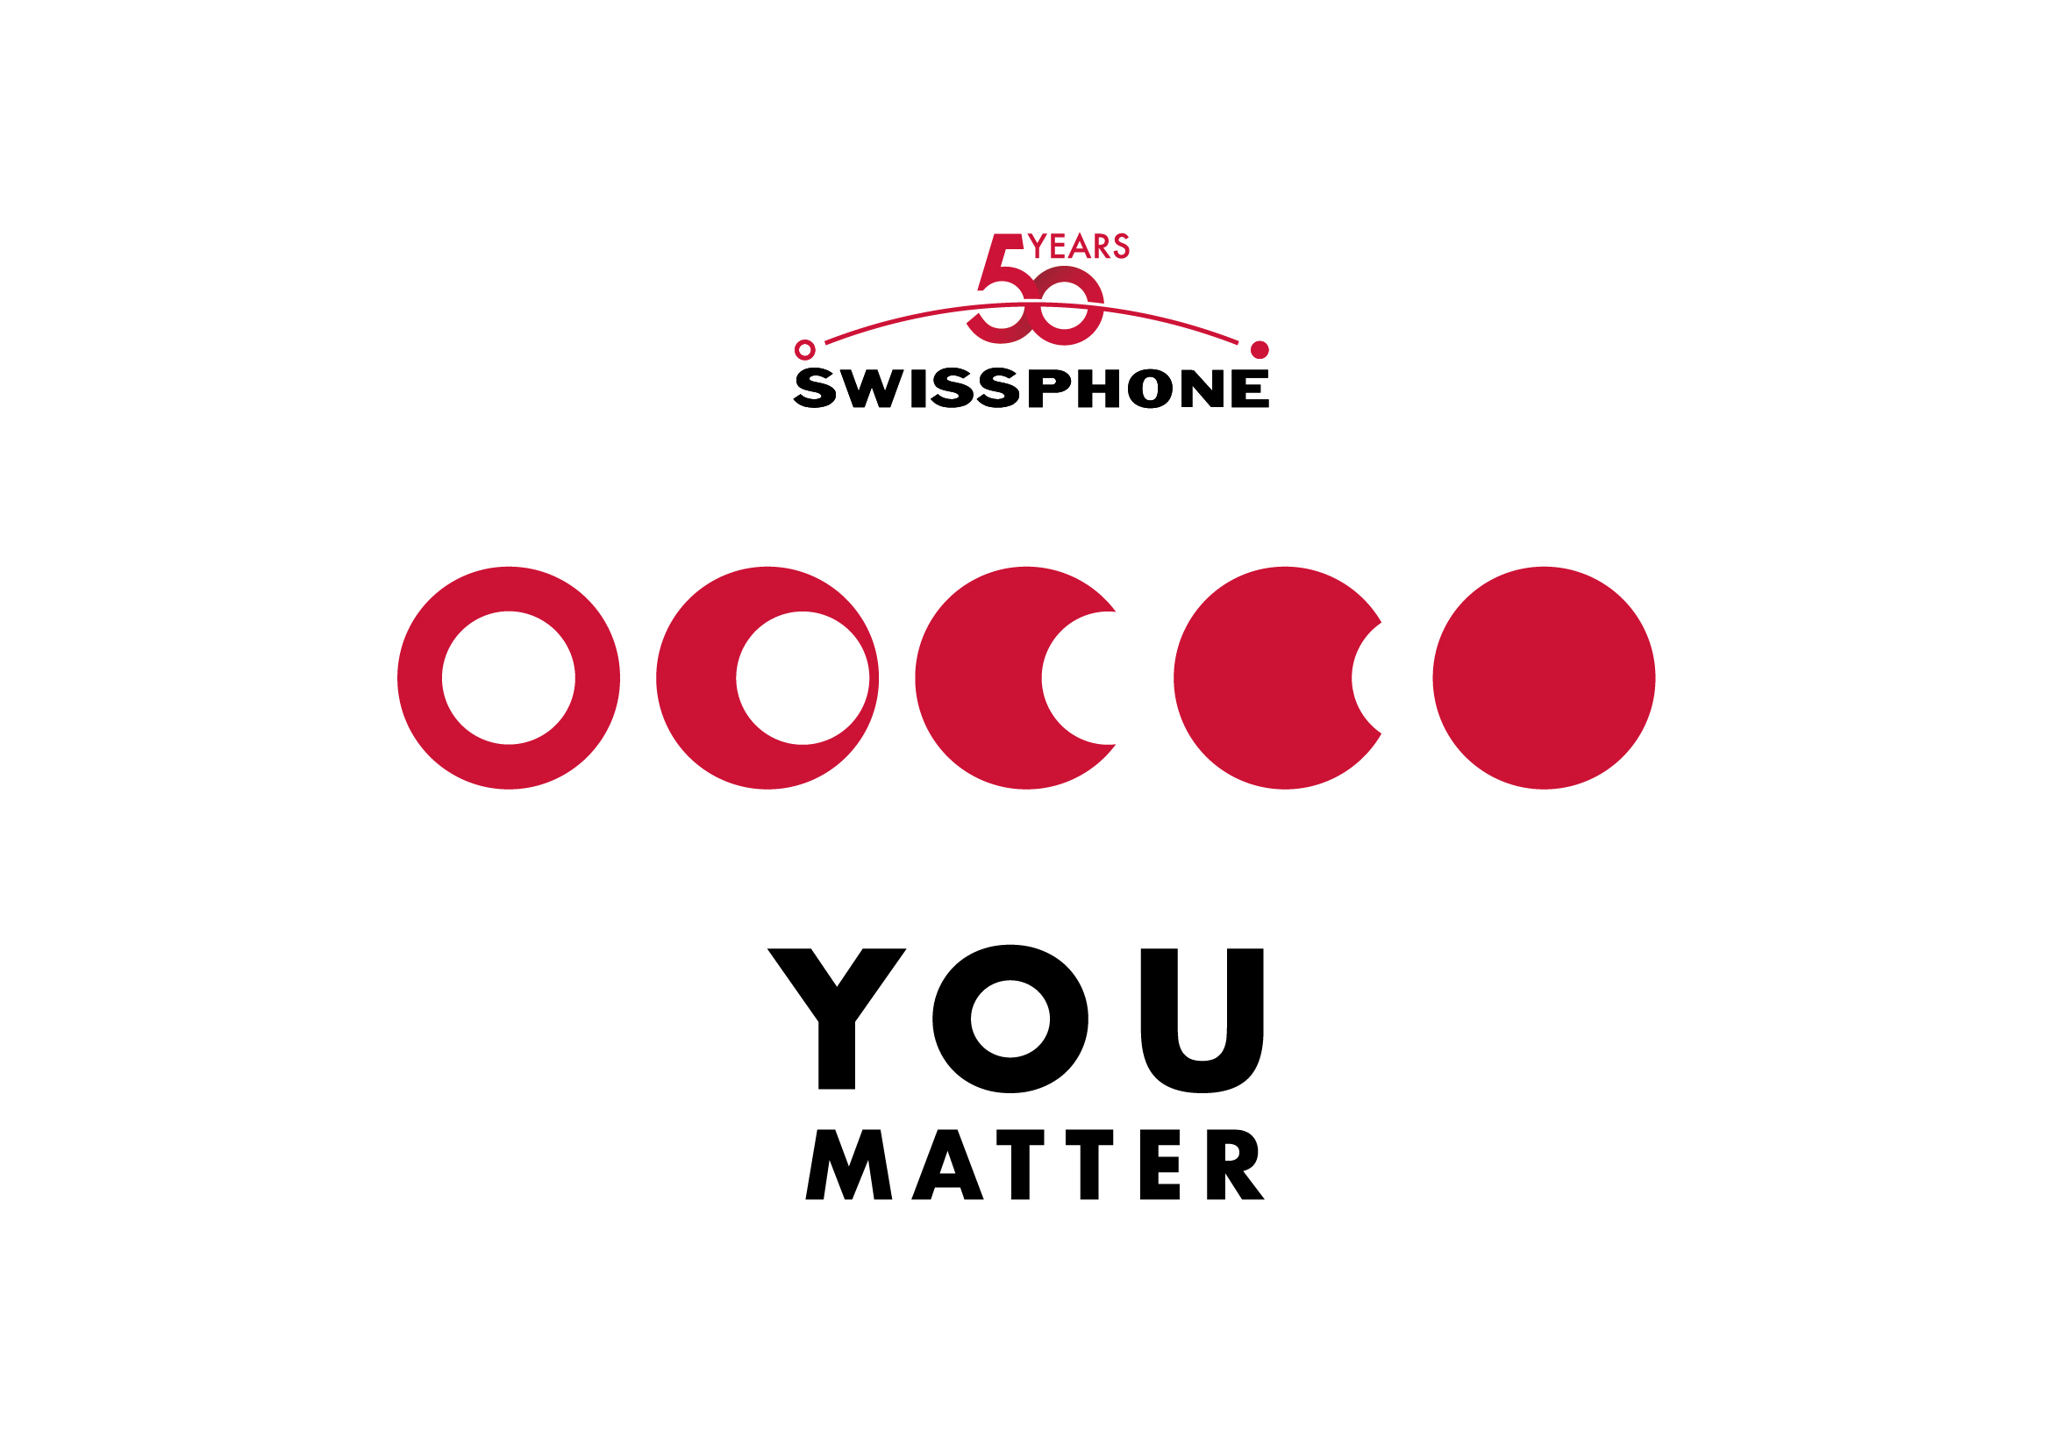 Swissphone: Future-oriented succession plan and 50th-anniversary celebration